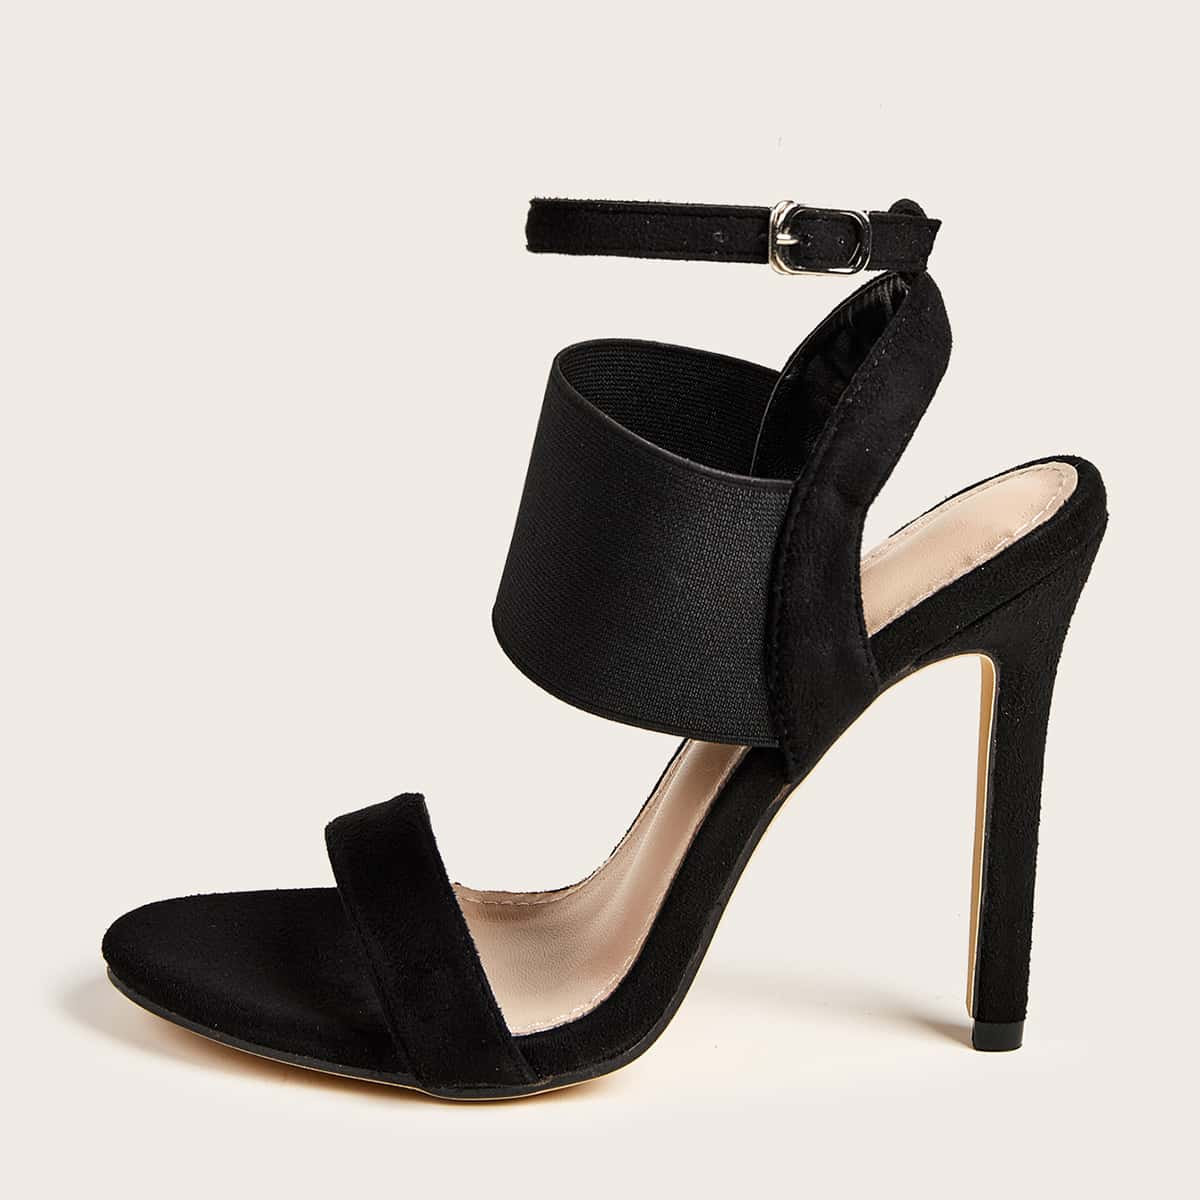 SHEIN / Minimalist Ankle Strap Stiletto Heeled Sandals